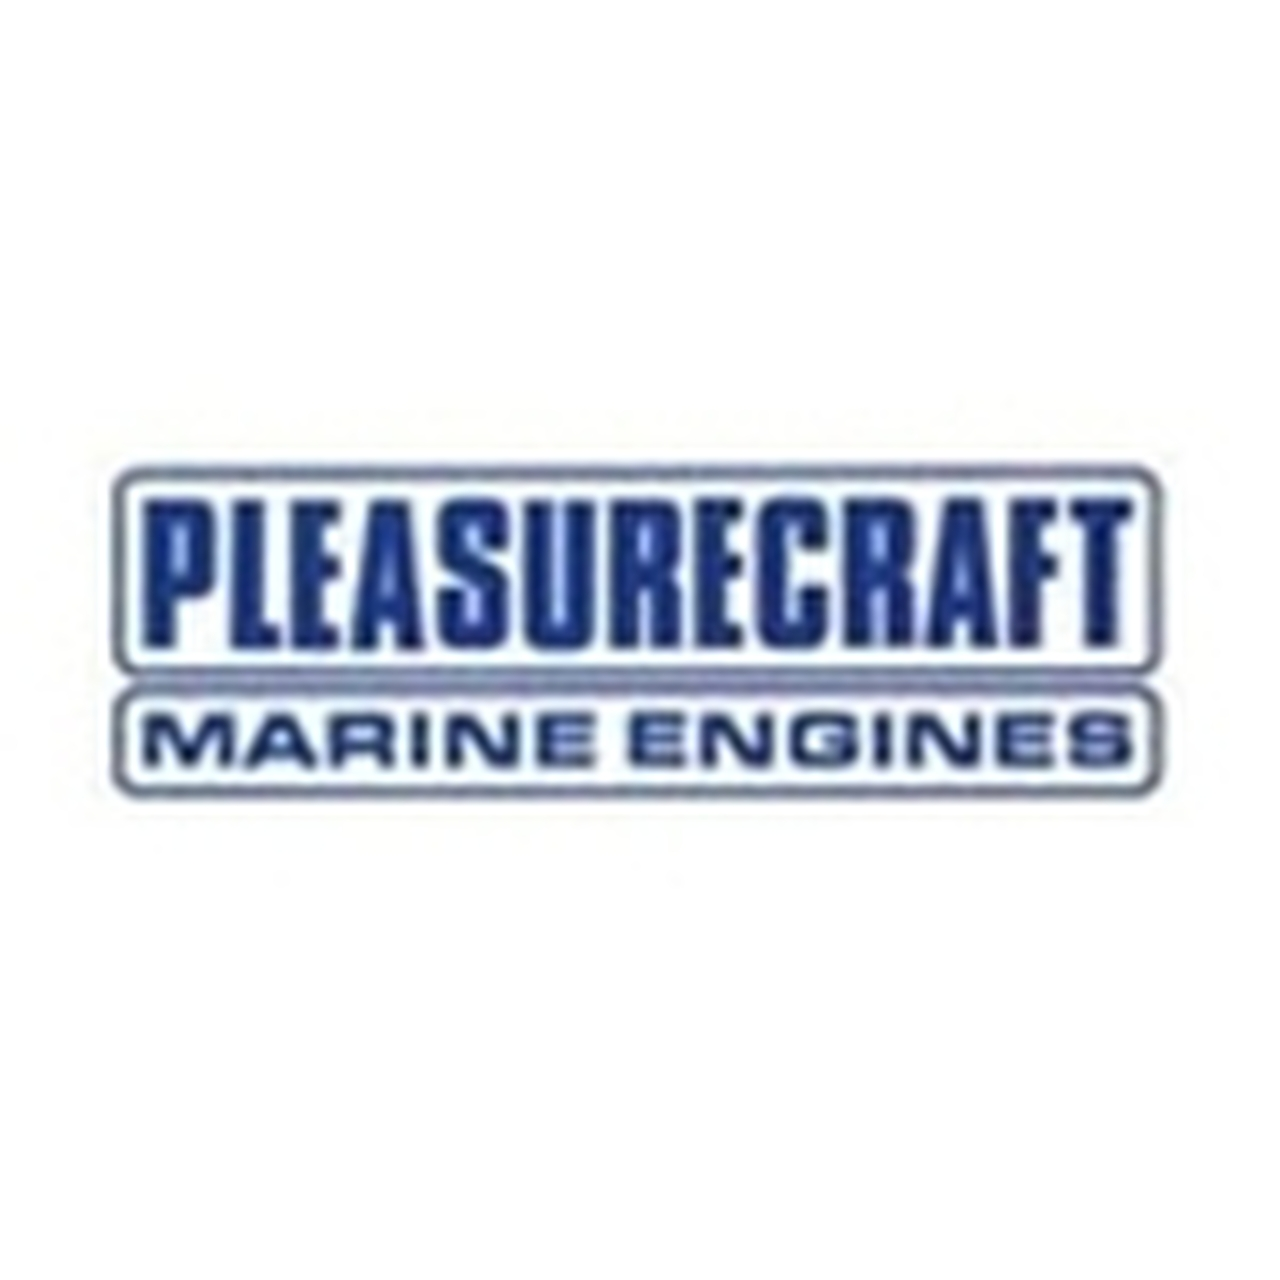 Pleasurecraft Marine